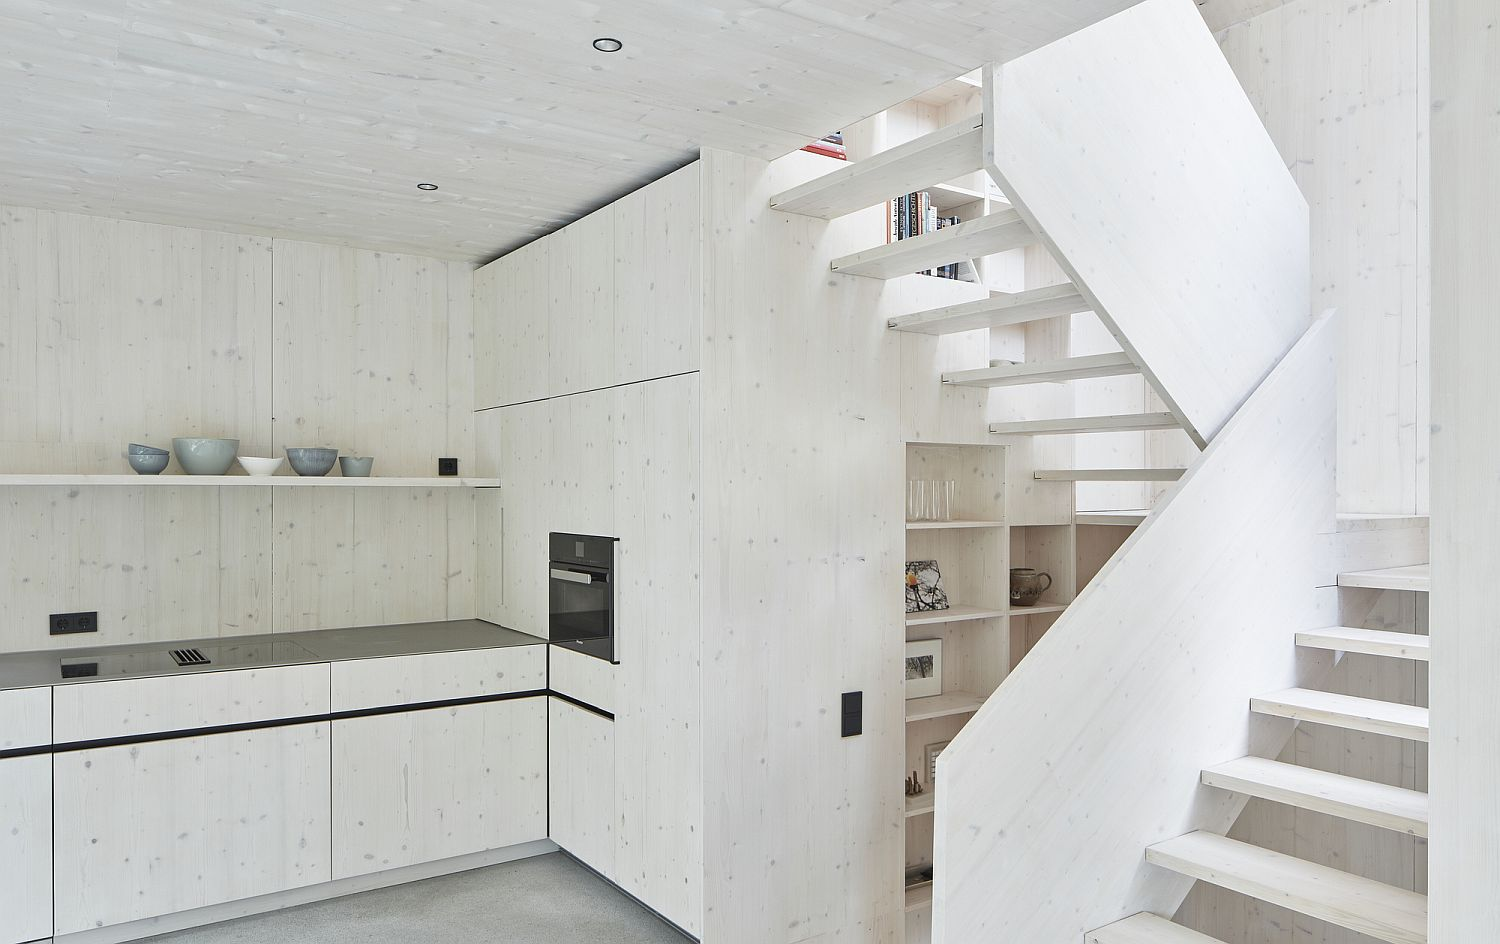 Scandinavian minimalism takes over inside the contemporary homes